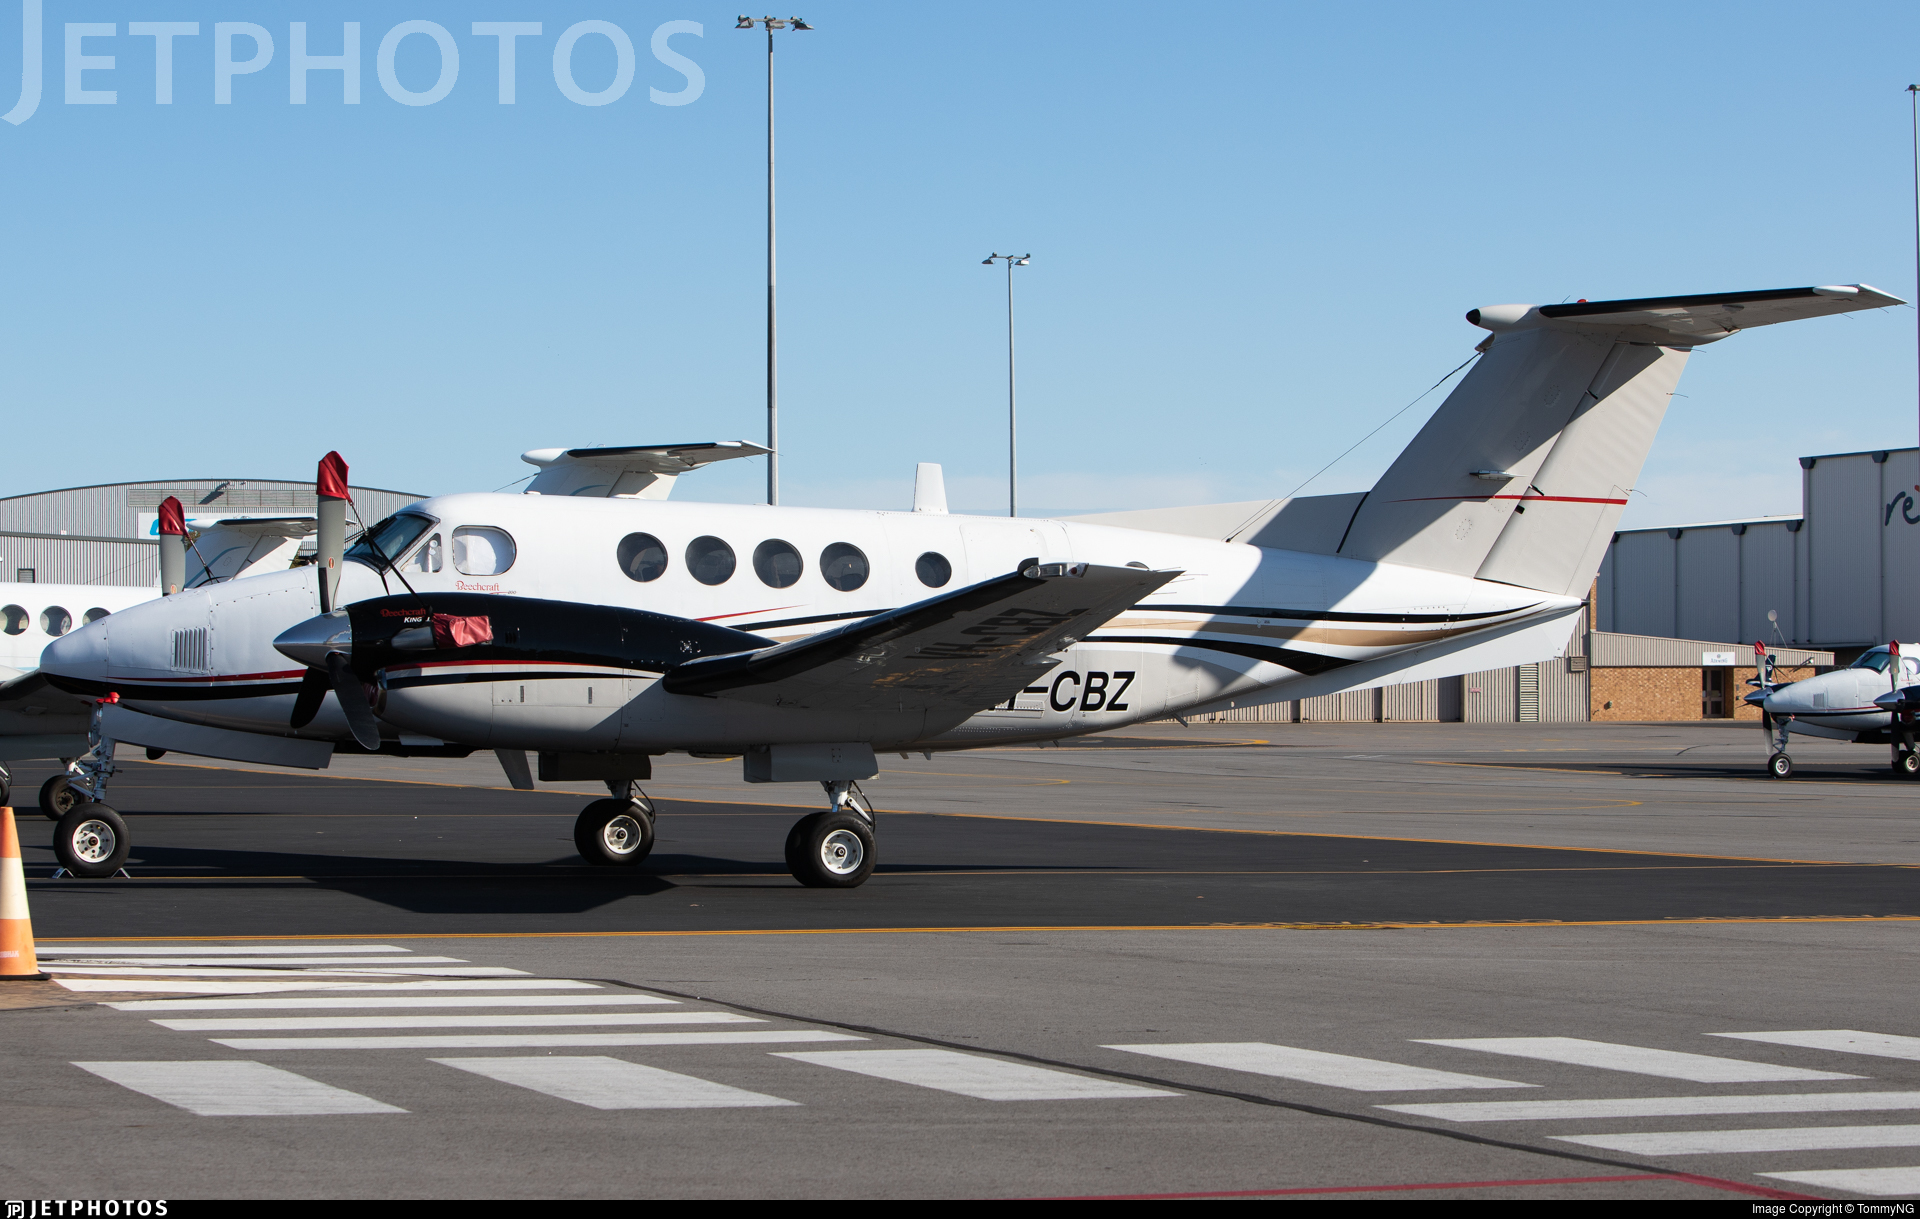 VH-CBZ - Beechcraft 200C Super King Air - Private